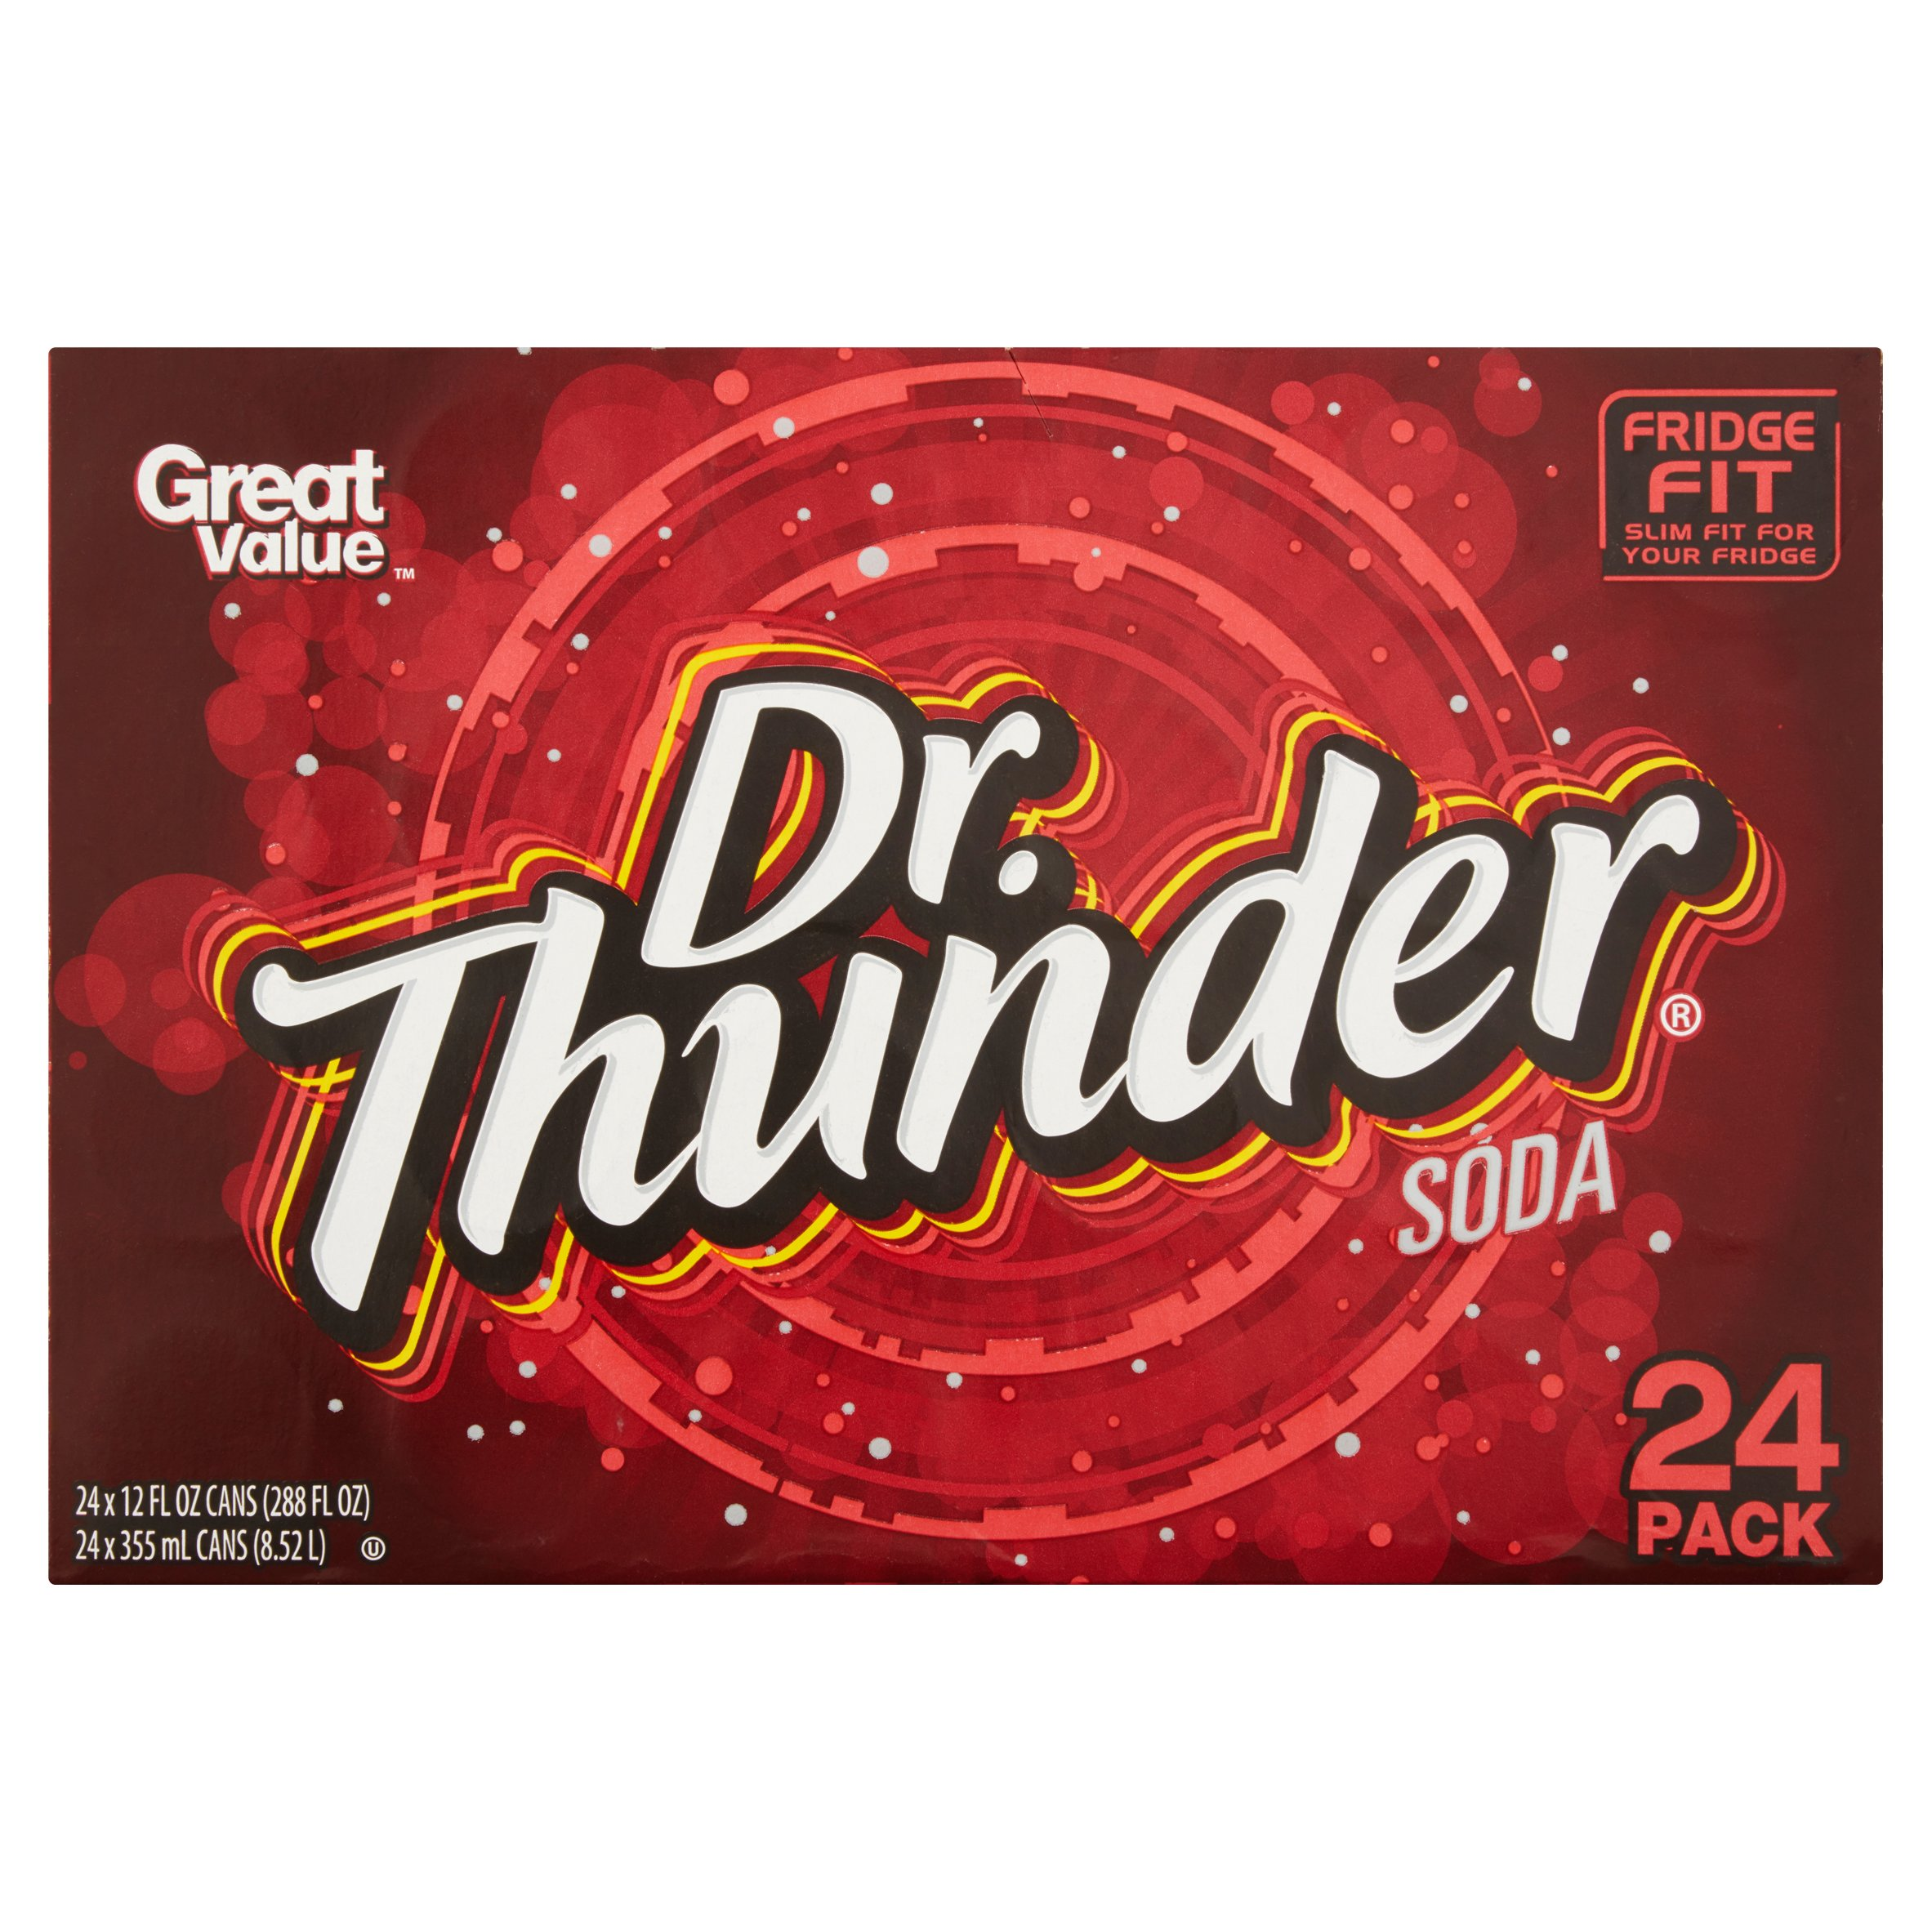 Great Value Dr. Thunder Soda, 12 fl oz, 24 pack